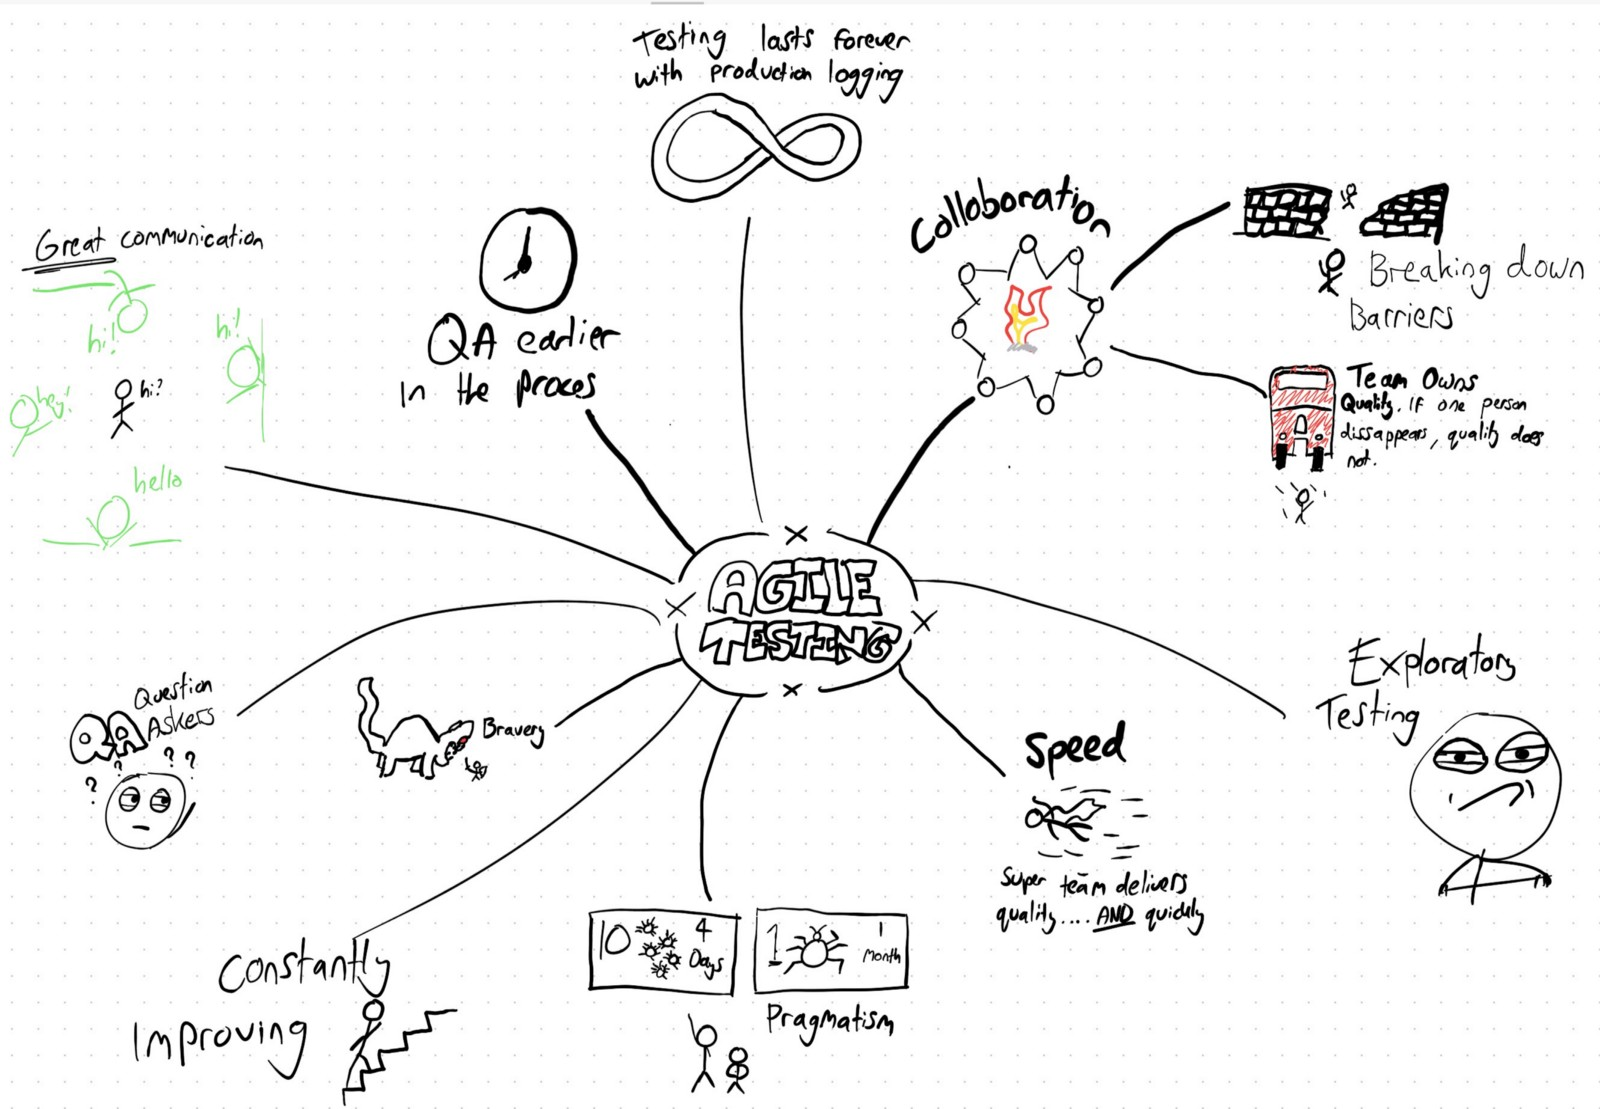 30 Days of agile testing — Day 2: Create a mind map, drawing ...